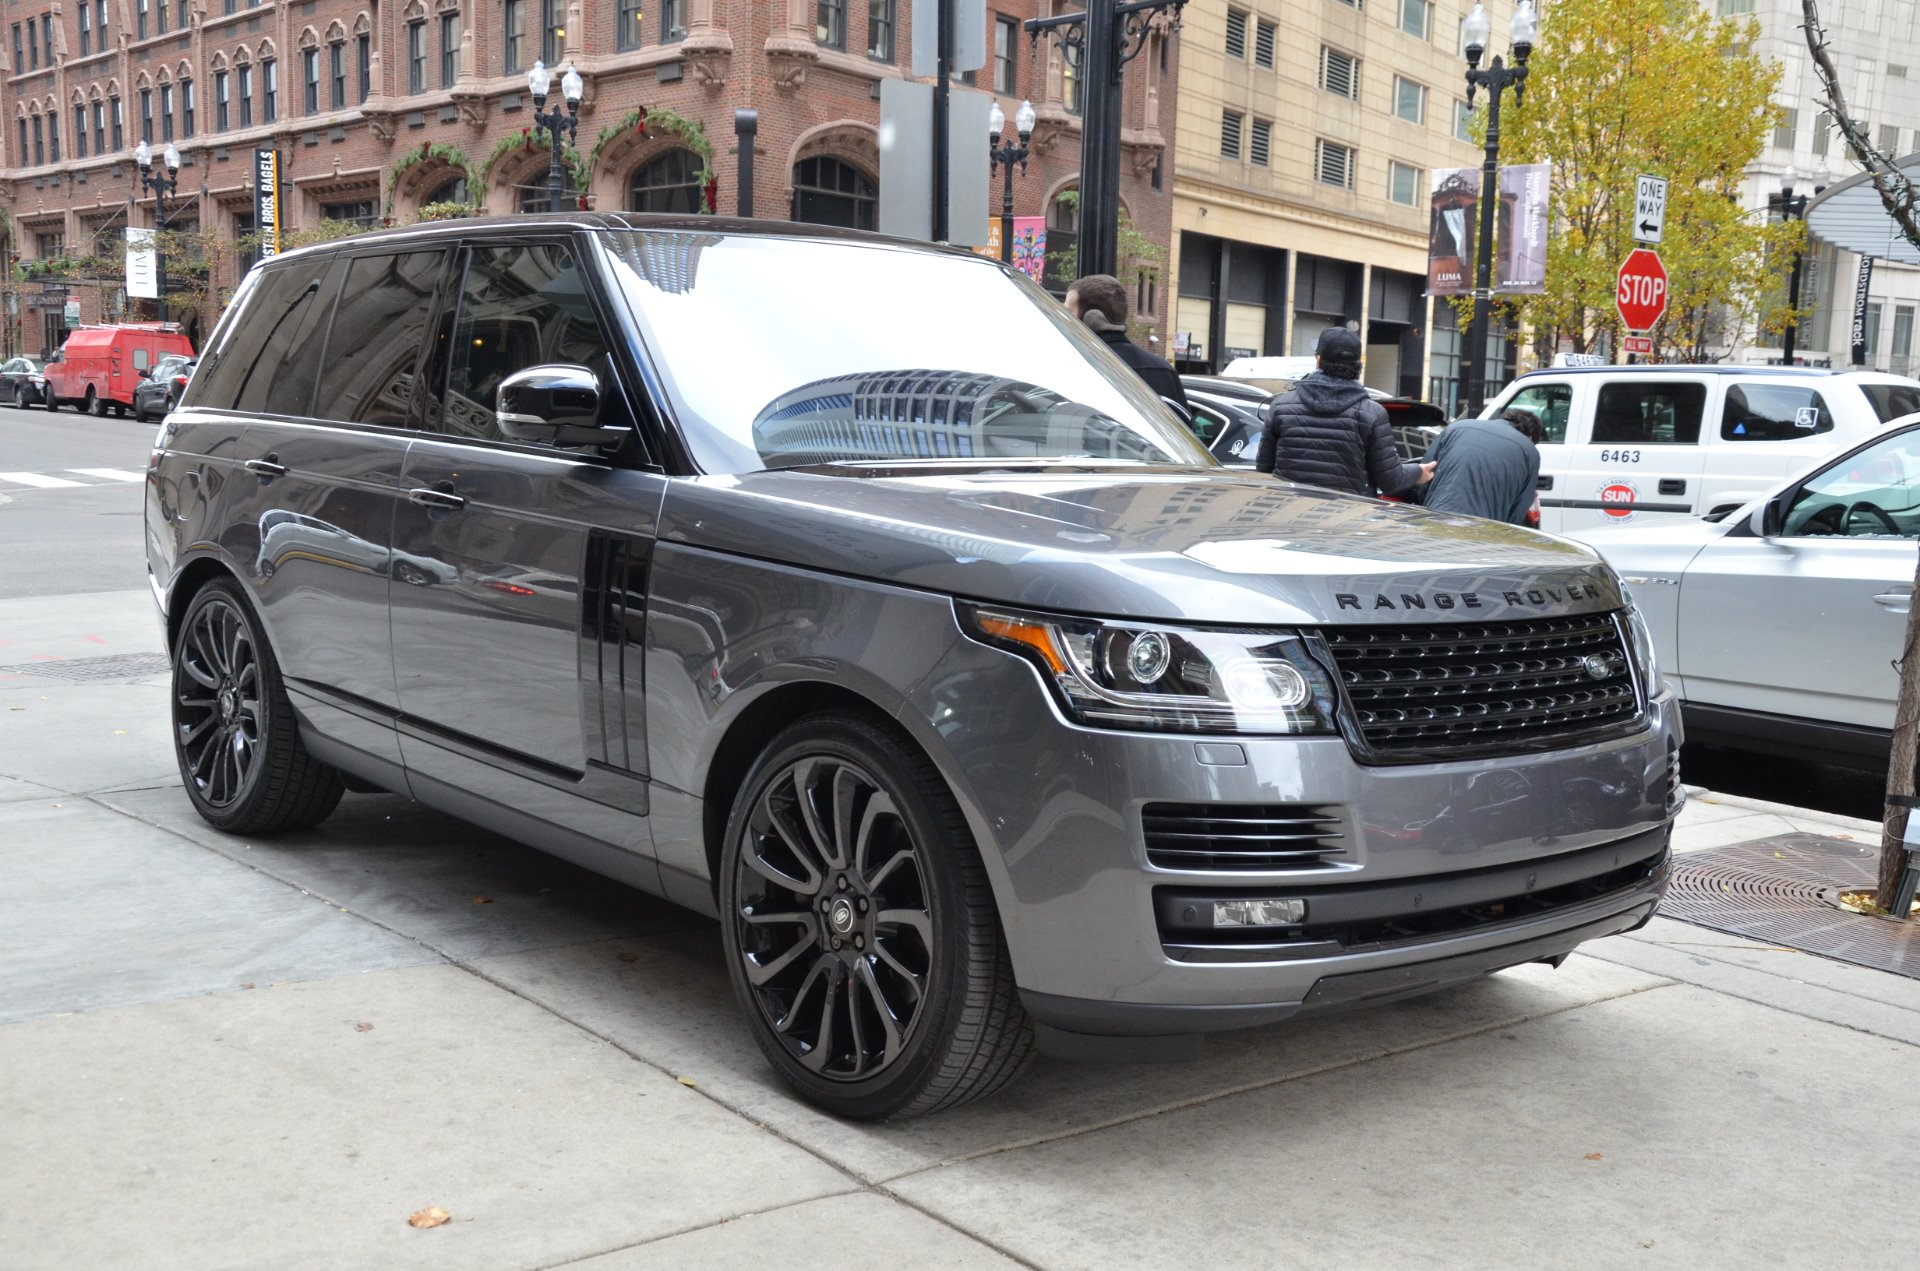 Range Rover Supercharged 2016 >> 2016 Land Rover Range Rover Supercharged Stock # B867A for